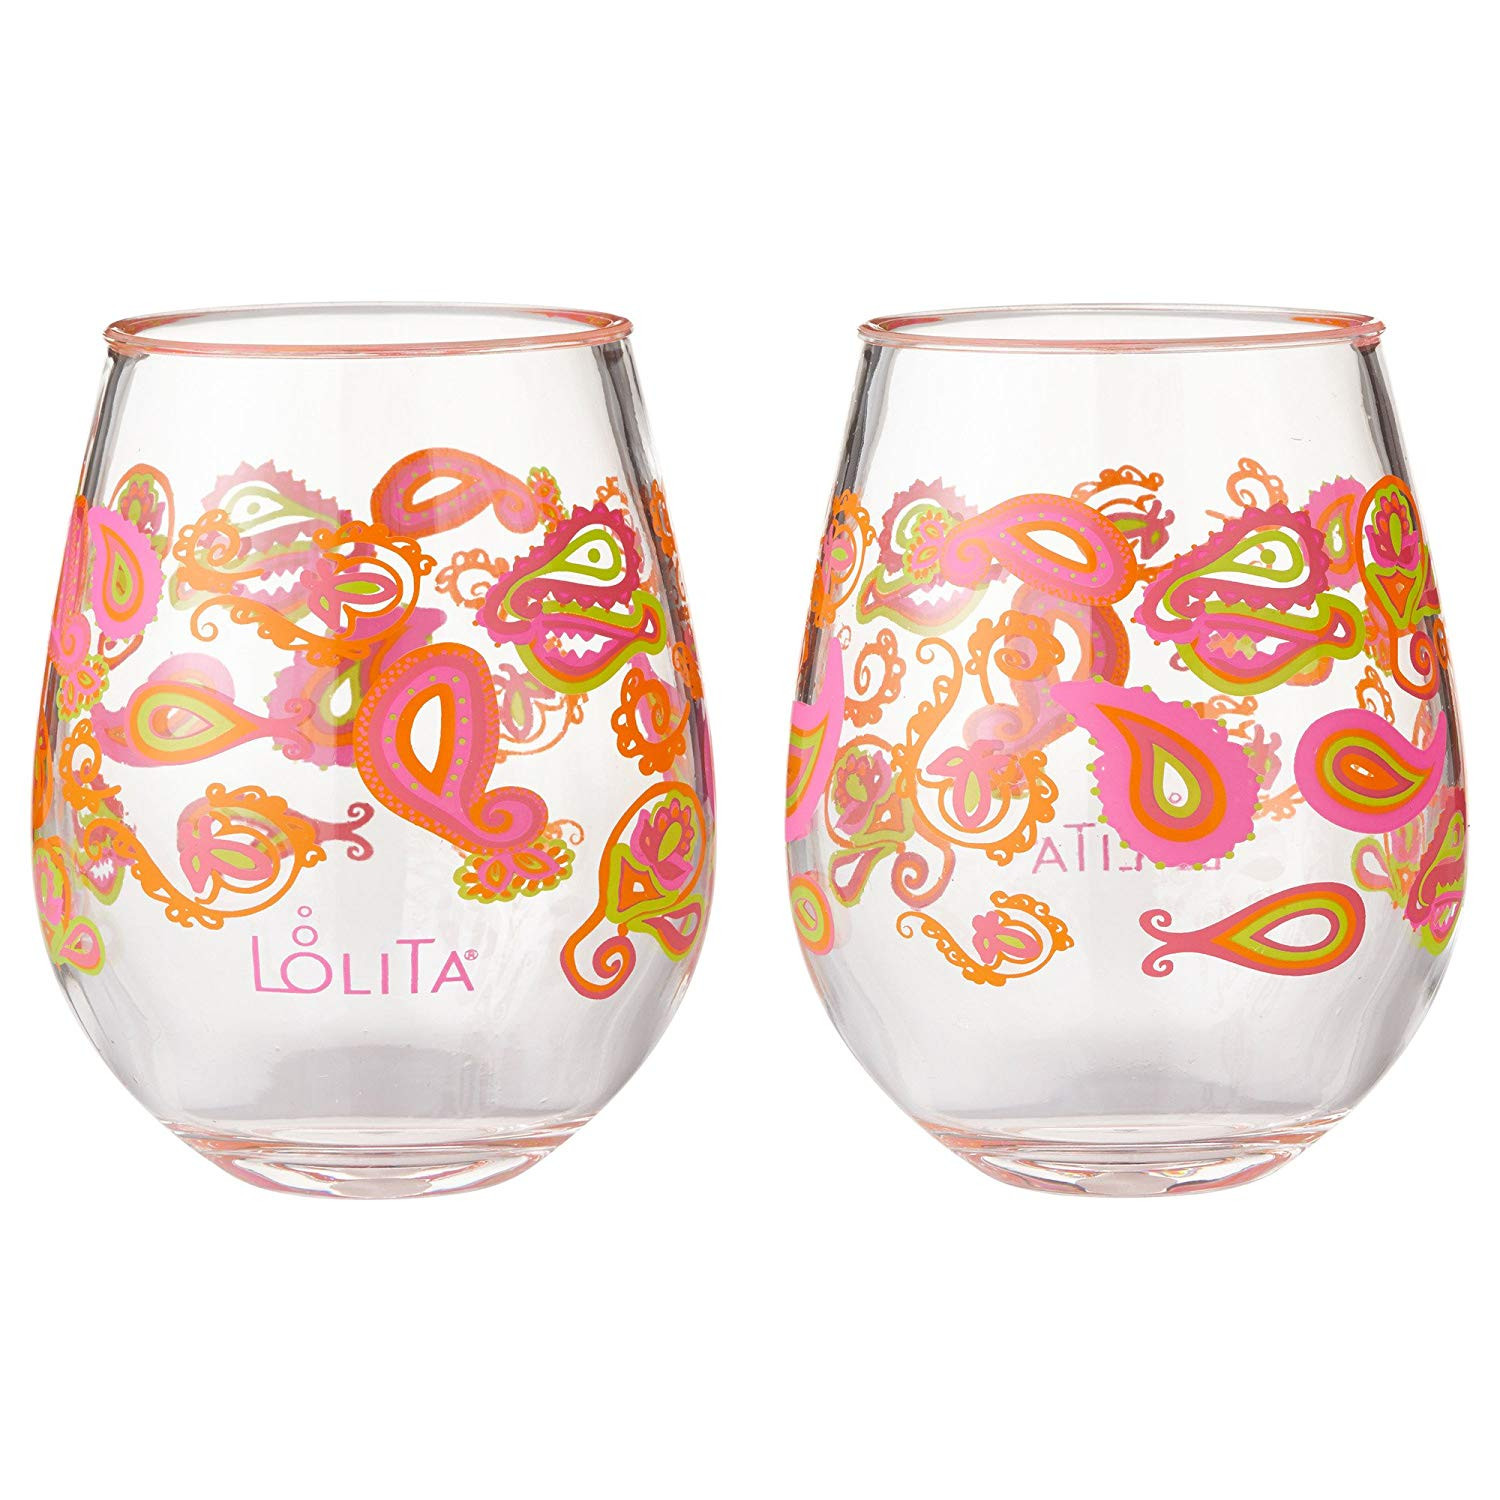 global views glass vase of amazon com enesco designs by lolita paisley acrylic stemless wine for amazon com enesco designs by lolita paisley acrylic stemless wine glasses set of 2 17 oz wine